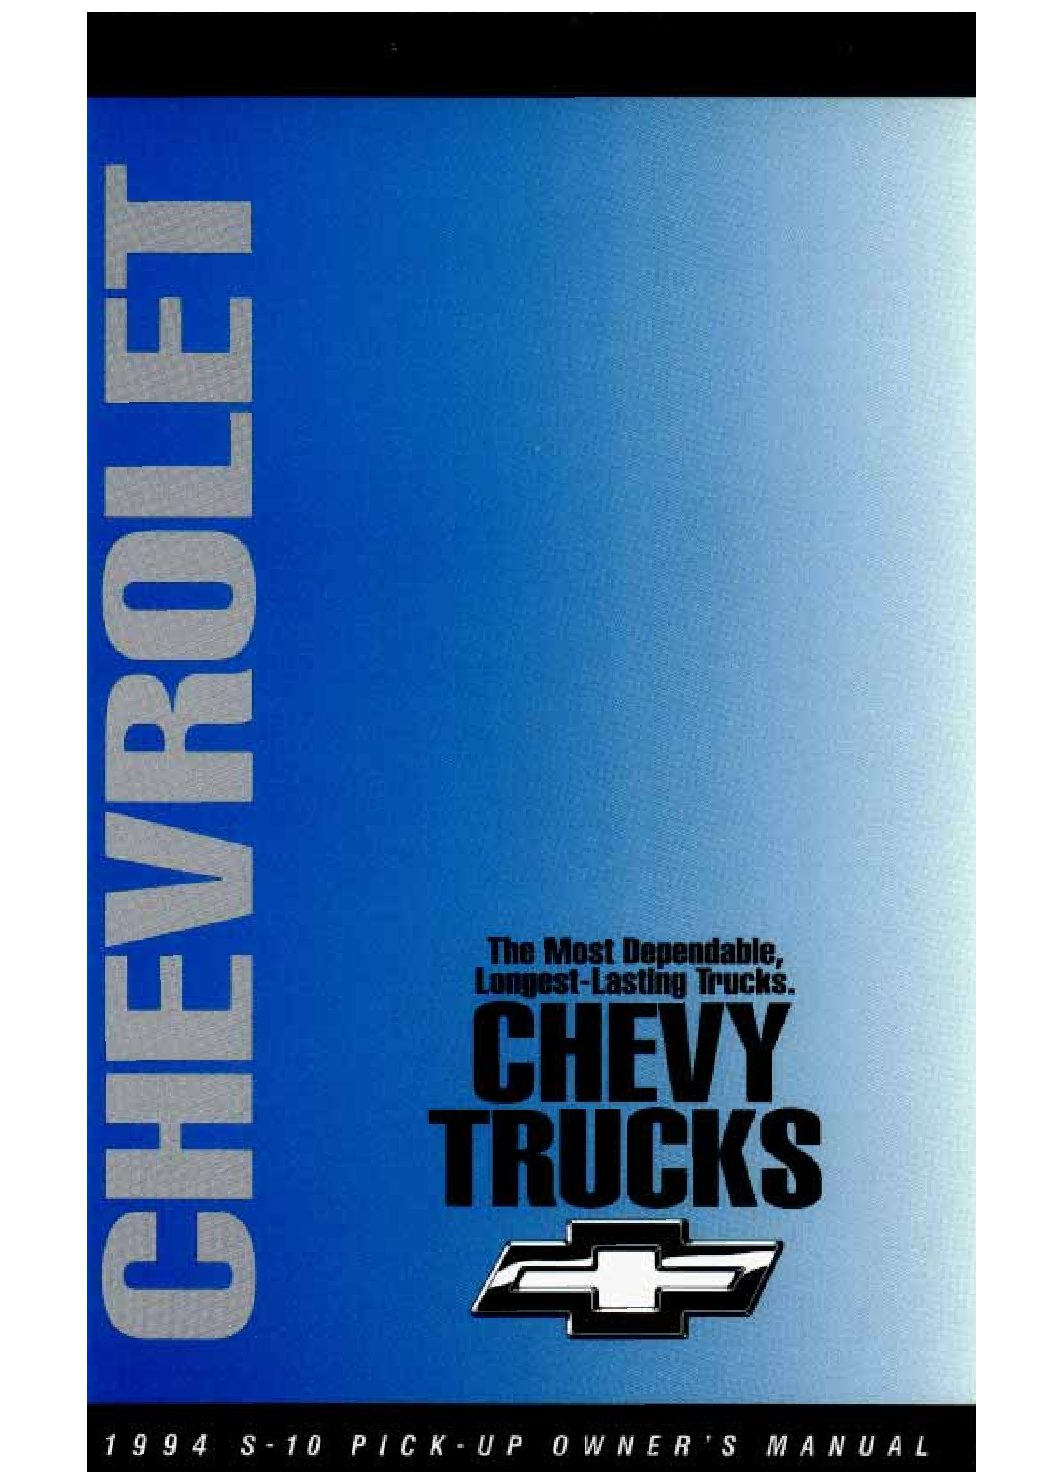 1994 chevrolet s10 owners manual just give me the damn manual rh justgivemethedamnmanual com 2003 Chevrolet S10 Chevy S10 Manual Inside